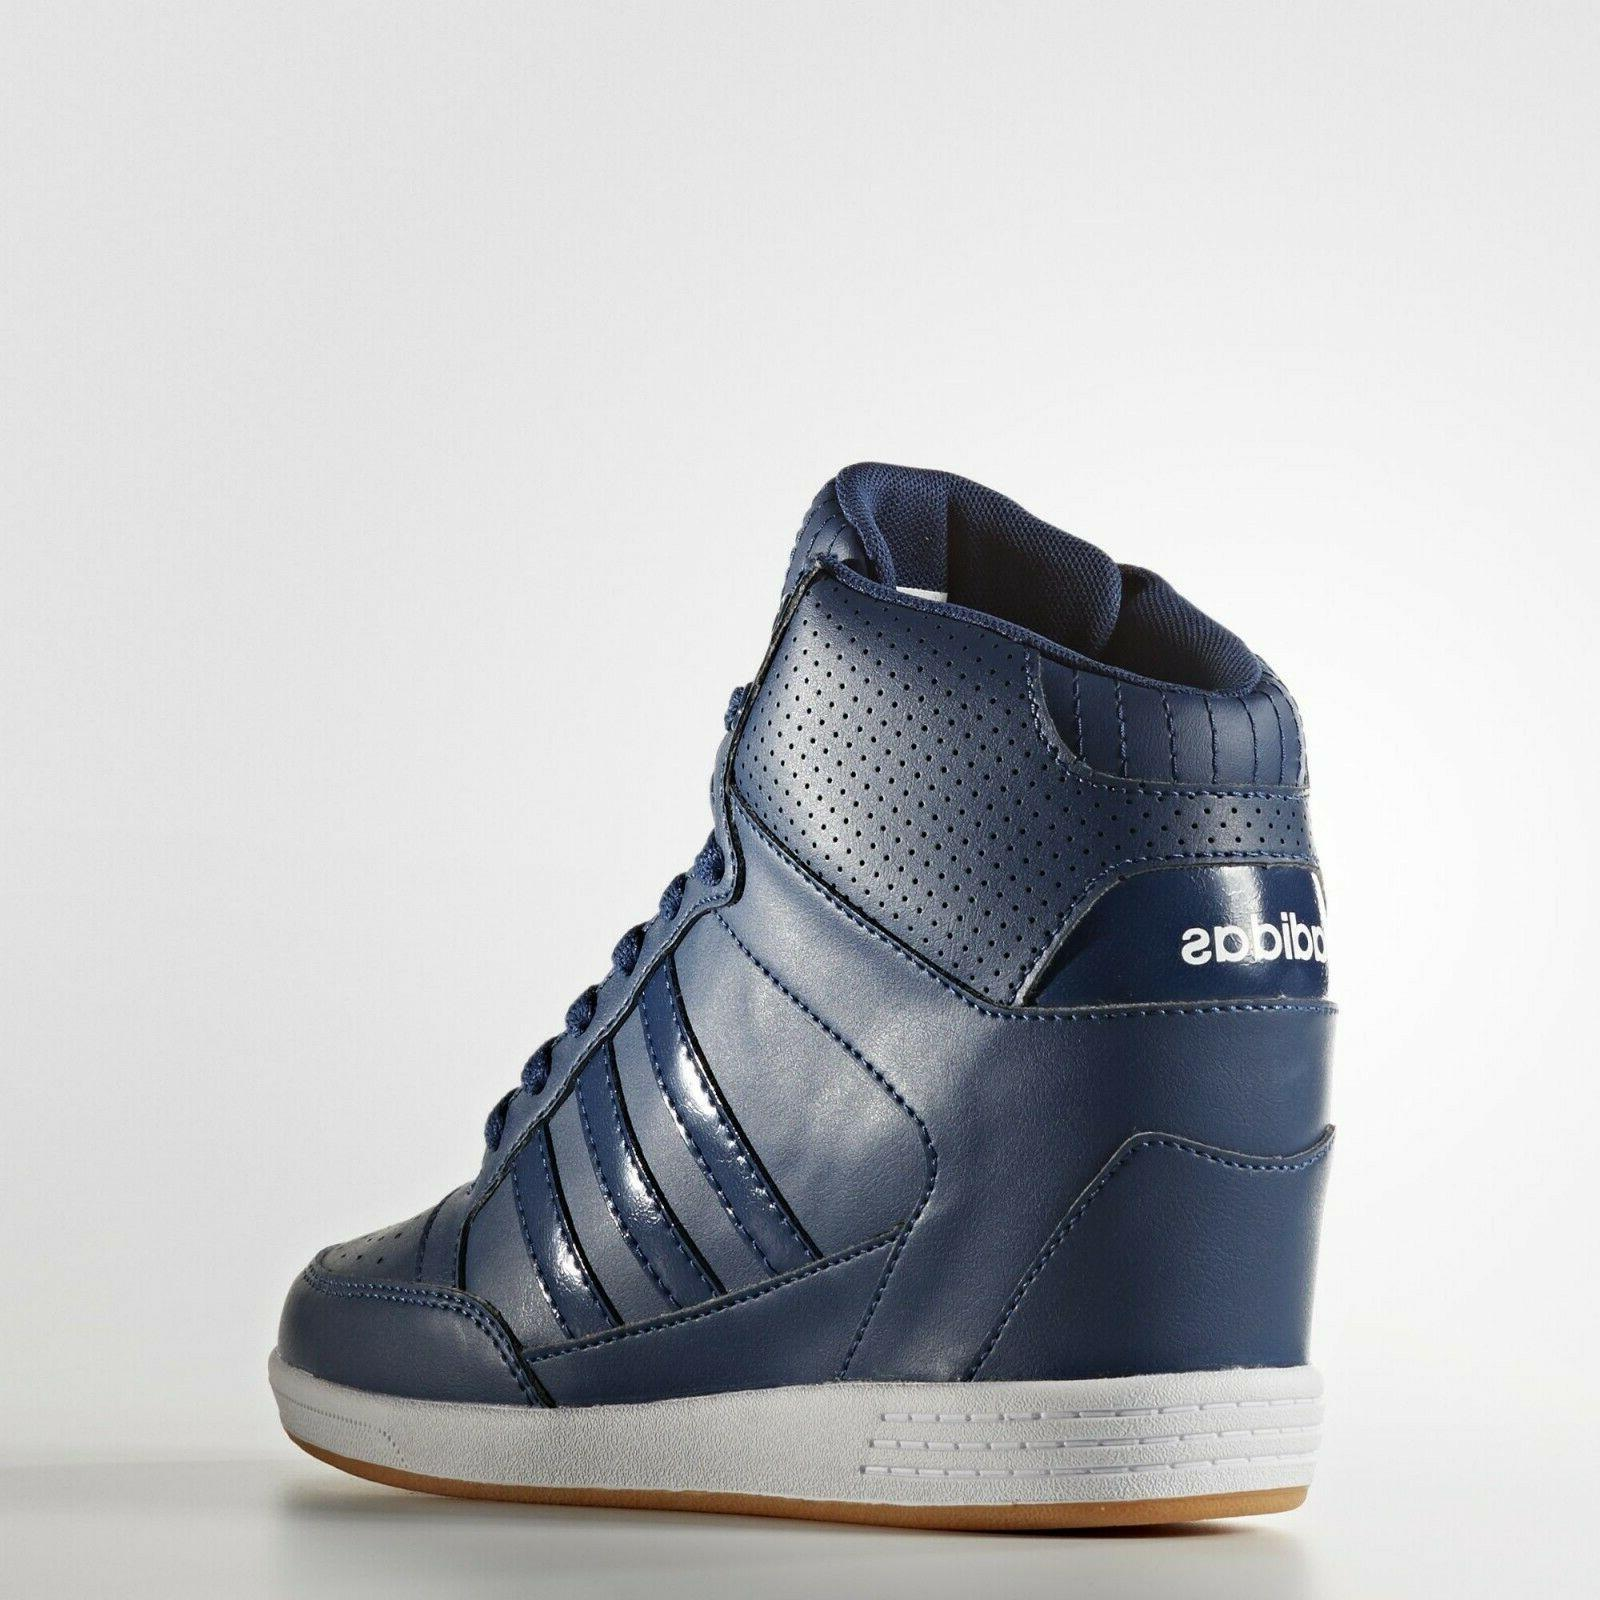 Adidas NEO Blue shoes boots sizes